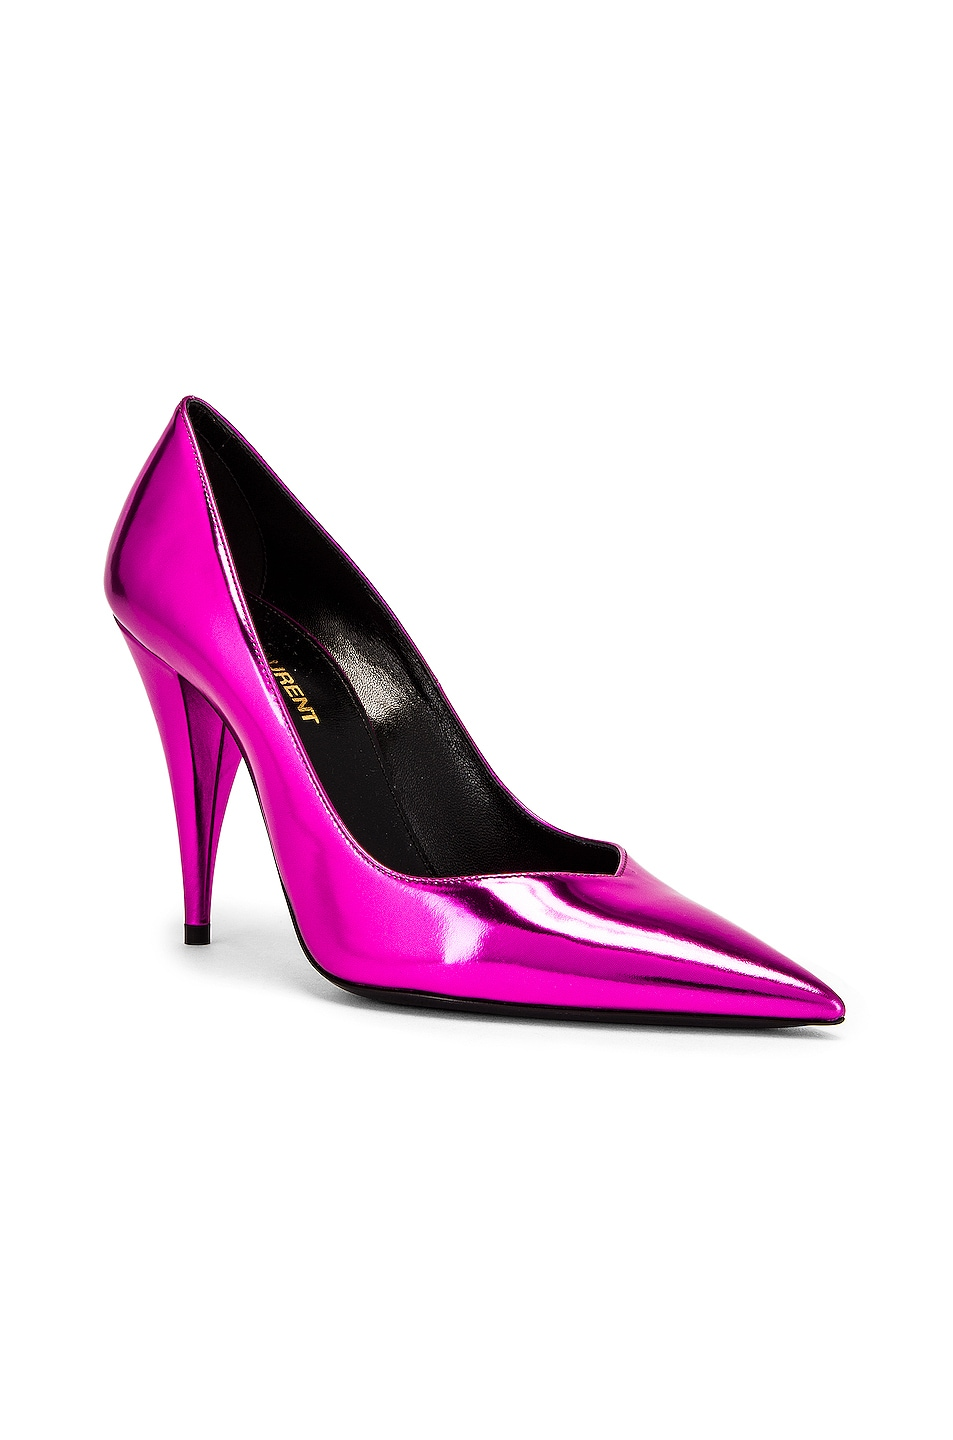 Image 2 of Saint Laurent Kiki Pumps in Metal Fuchsia